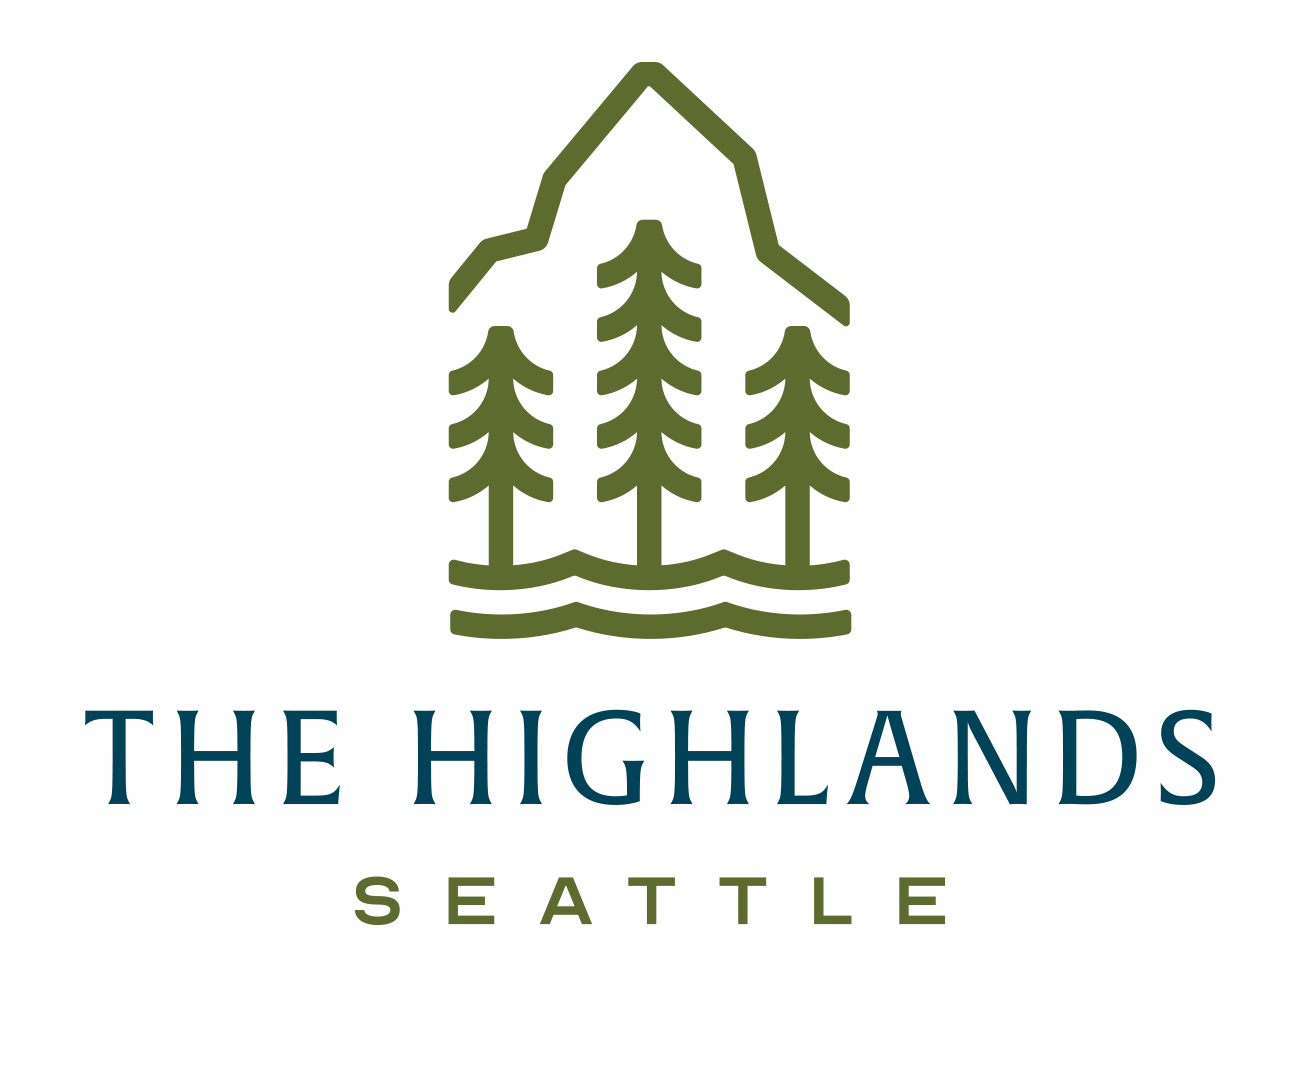 THE HIGHLANDS  SEATTLE